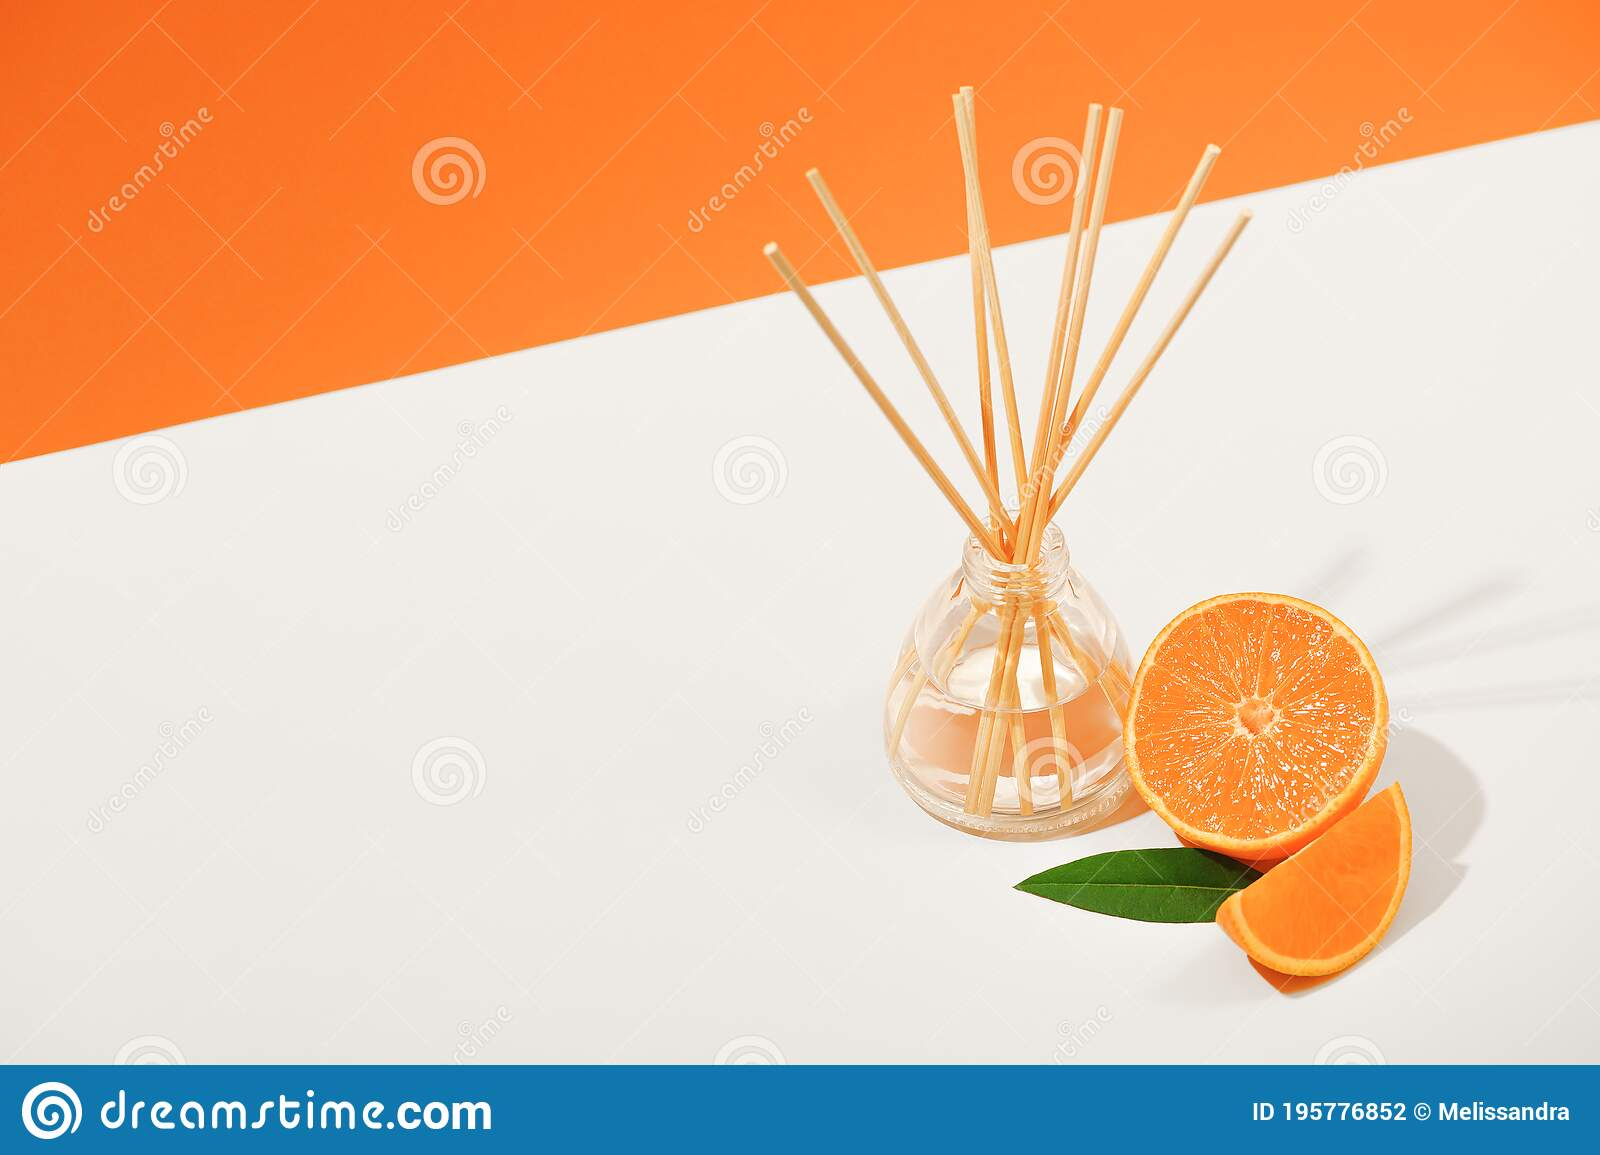 Air Freshener With Reed Sticks On A White Plate With Orange Tangerine Room Aromatization With A Diffuser With A Natural Scent Stock Photo Image Of Bottle Isolated 195776852